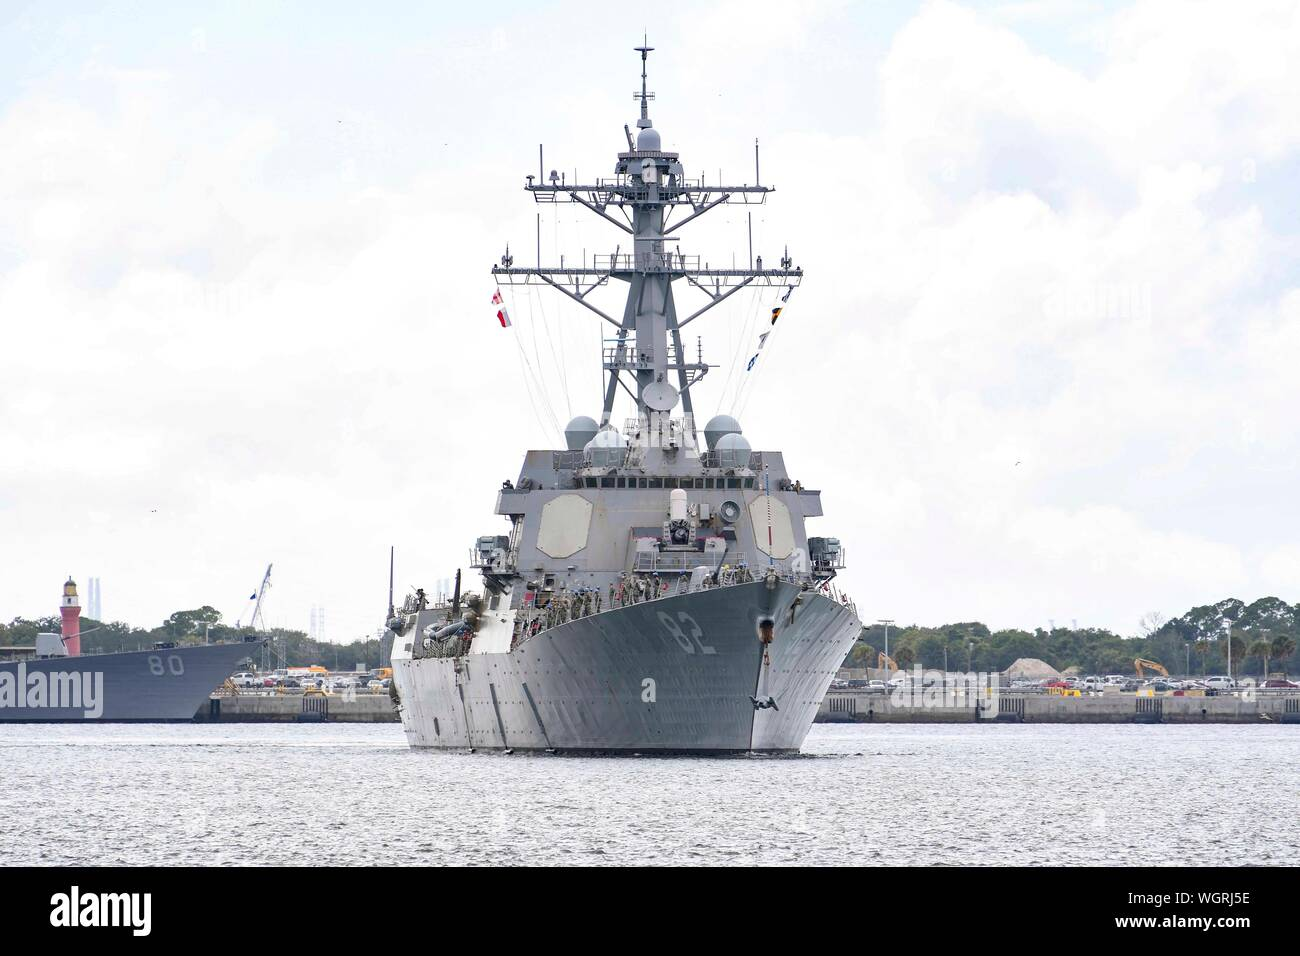 190830-N-DA434-118  JACKSONVILLE, Fla. (Aug. 30, 2019) The Arleigh Burke-class guided-missile destroyer USS Lassen (DDG 82) gets underway from Naval Station Mayport as Commander, U.S. 4th Fleet orders all U.S. Navy ships homeported in the area to sortie ahead of Hurricane Dorian, which is forecasted to bring high winds and heavy rain to the East Coast. Ships are being directed to areas in the Atlantic where they are best postured for storm avoidance.   (U.S. Navy photo by Mass Communication Specialist 3rd Class Alana Langdon/Released) Stock Photo